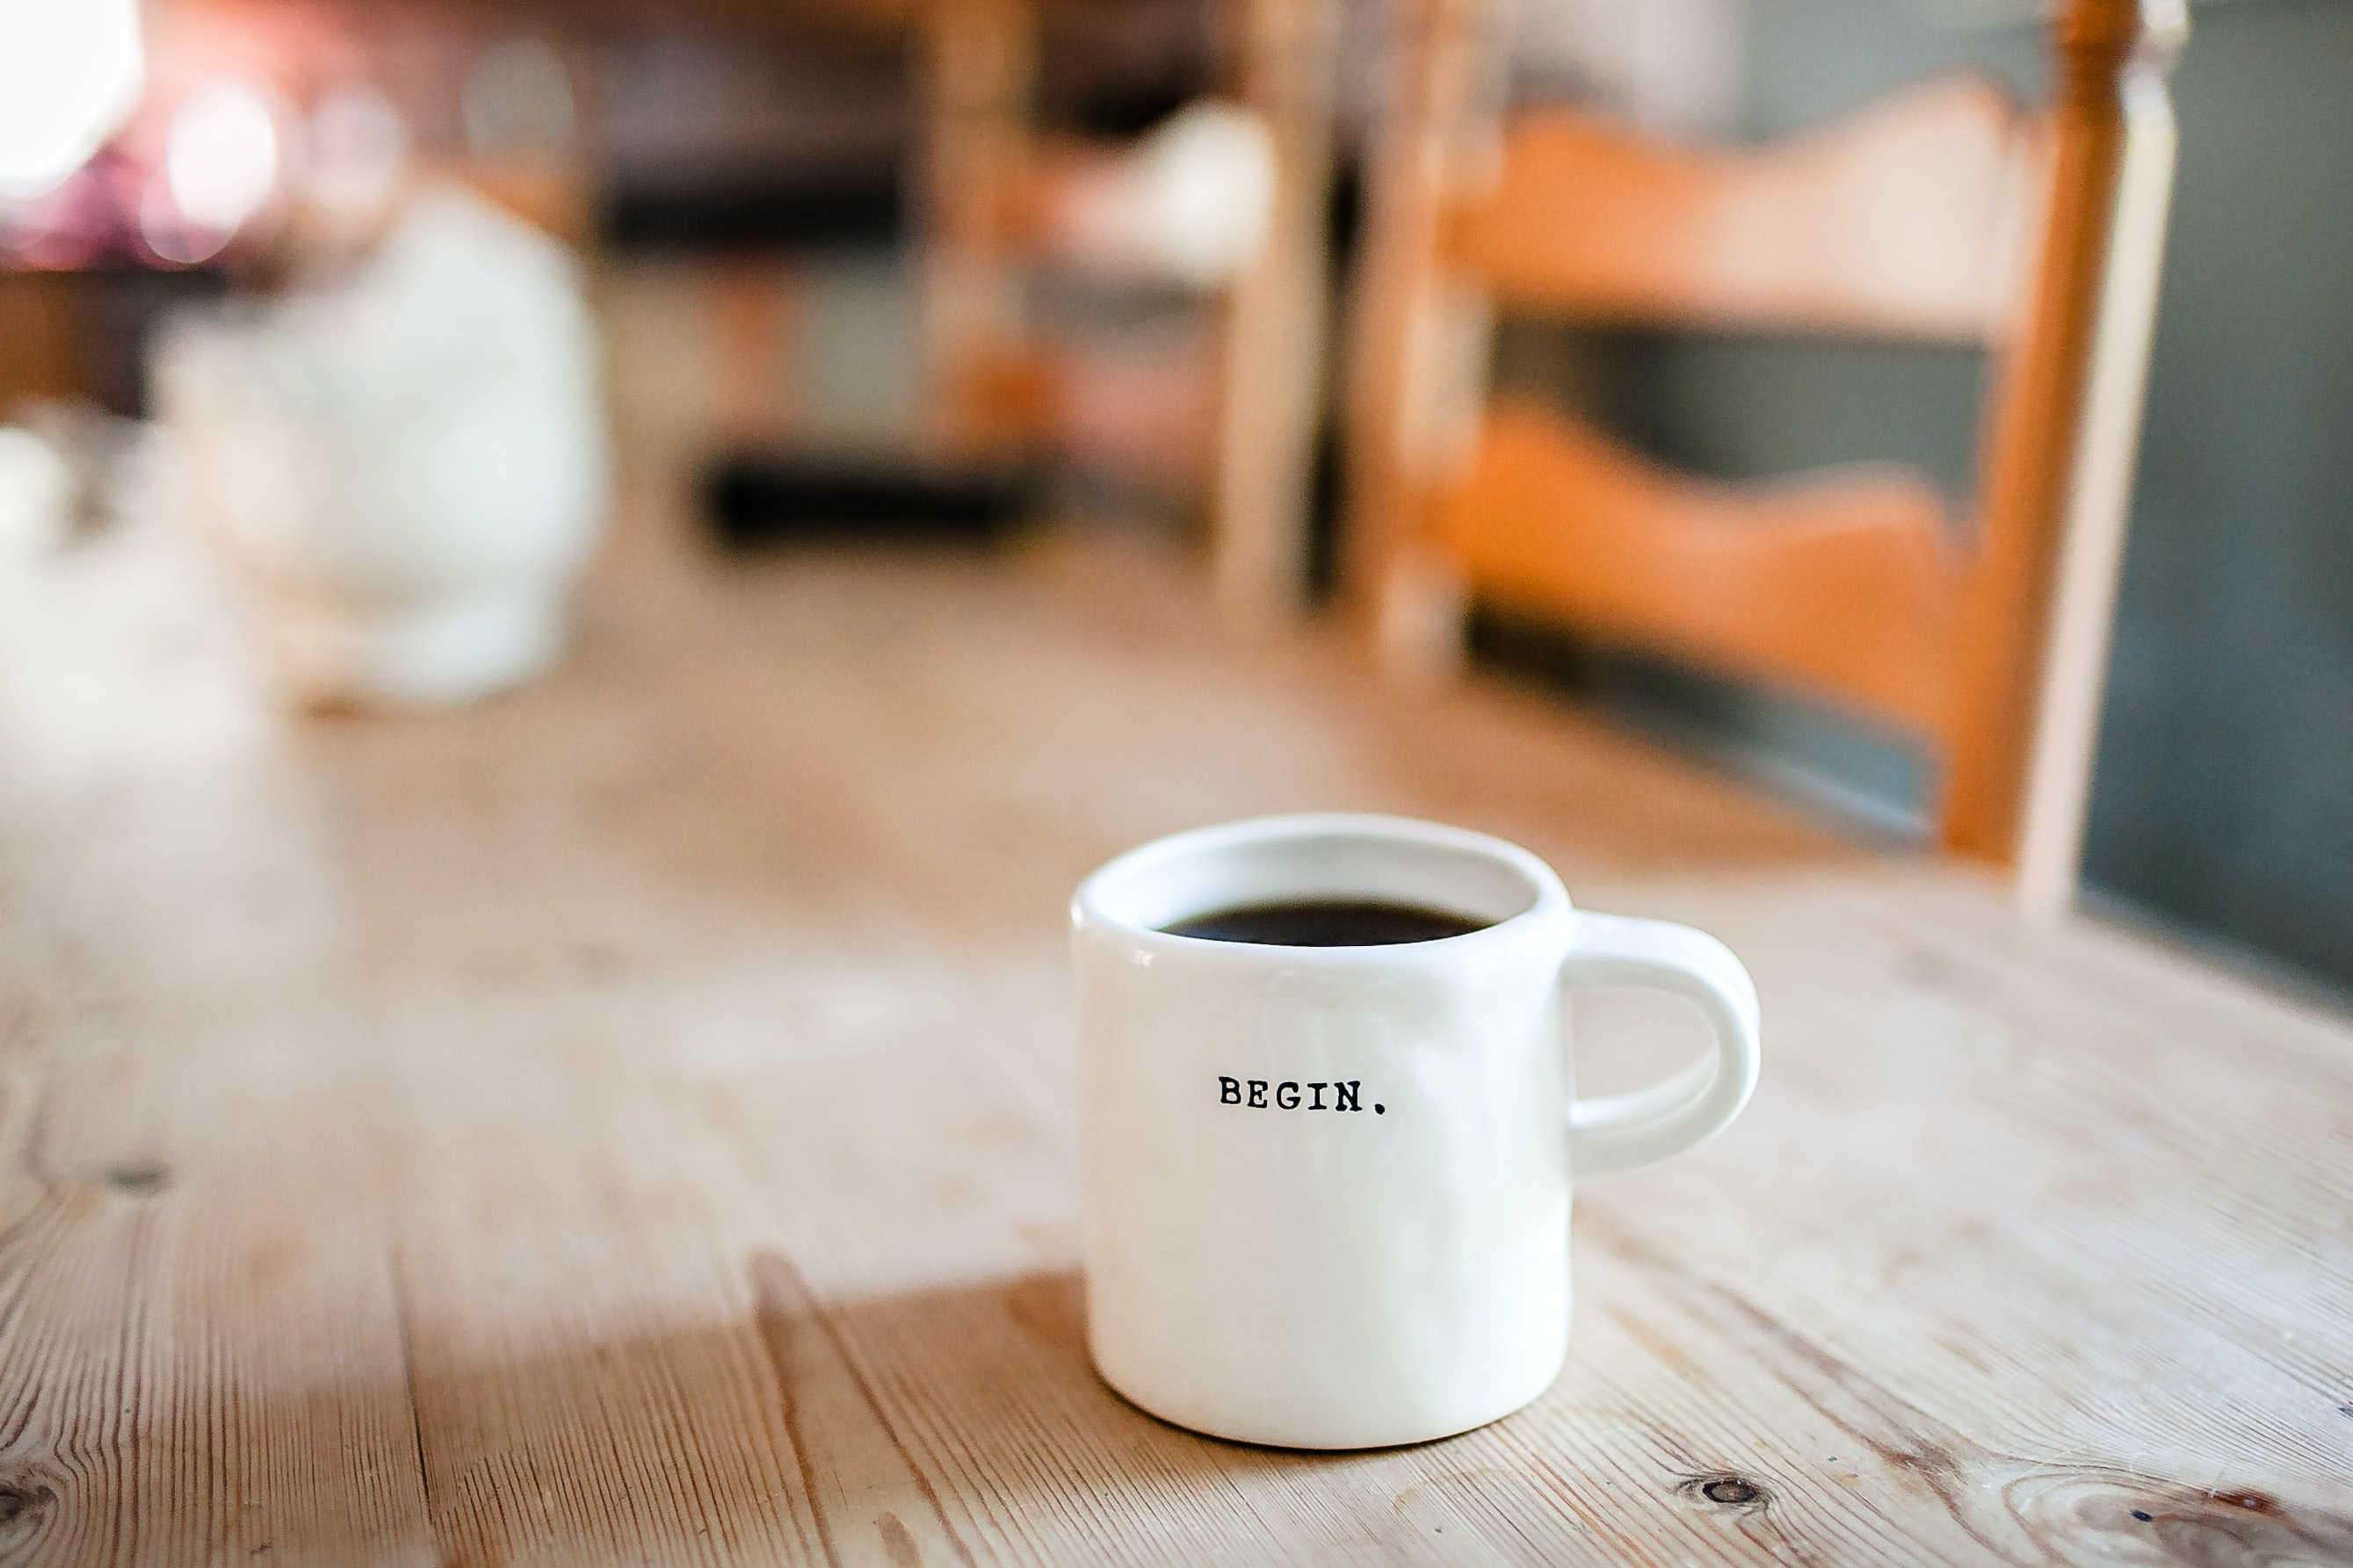 """Against a blurred table and chairs background, a white coffee cup with black type saying """"Begin.""""."""